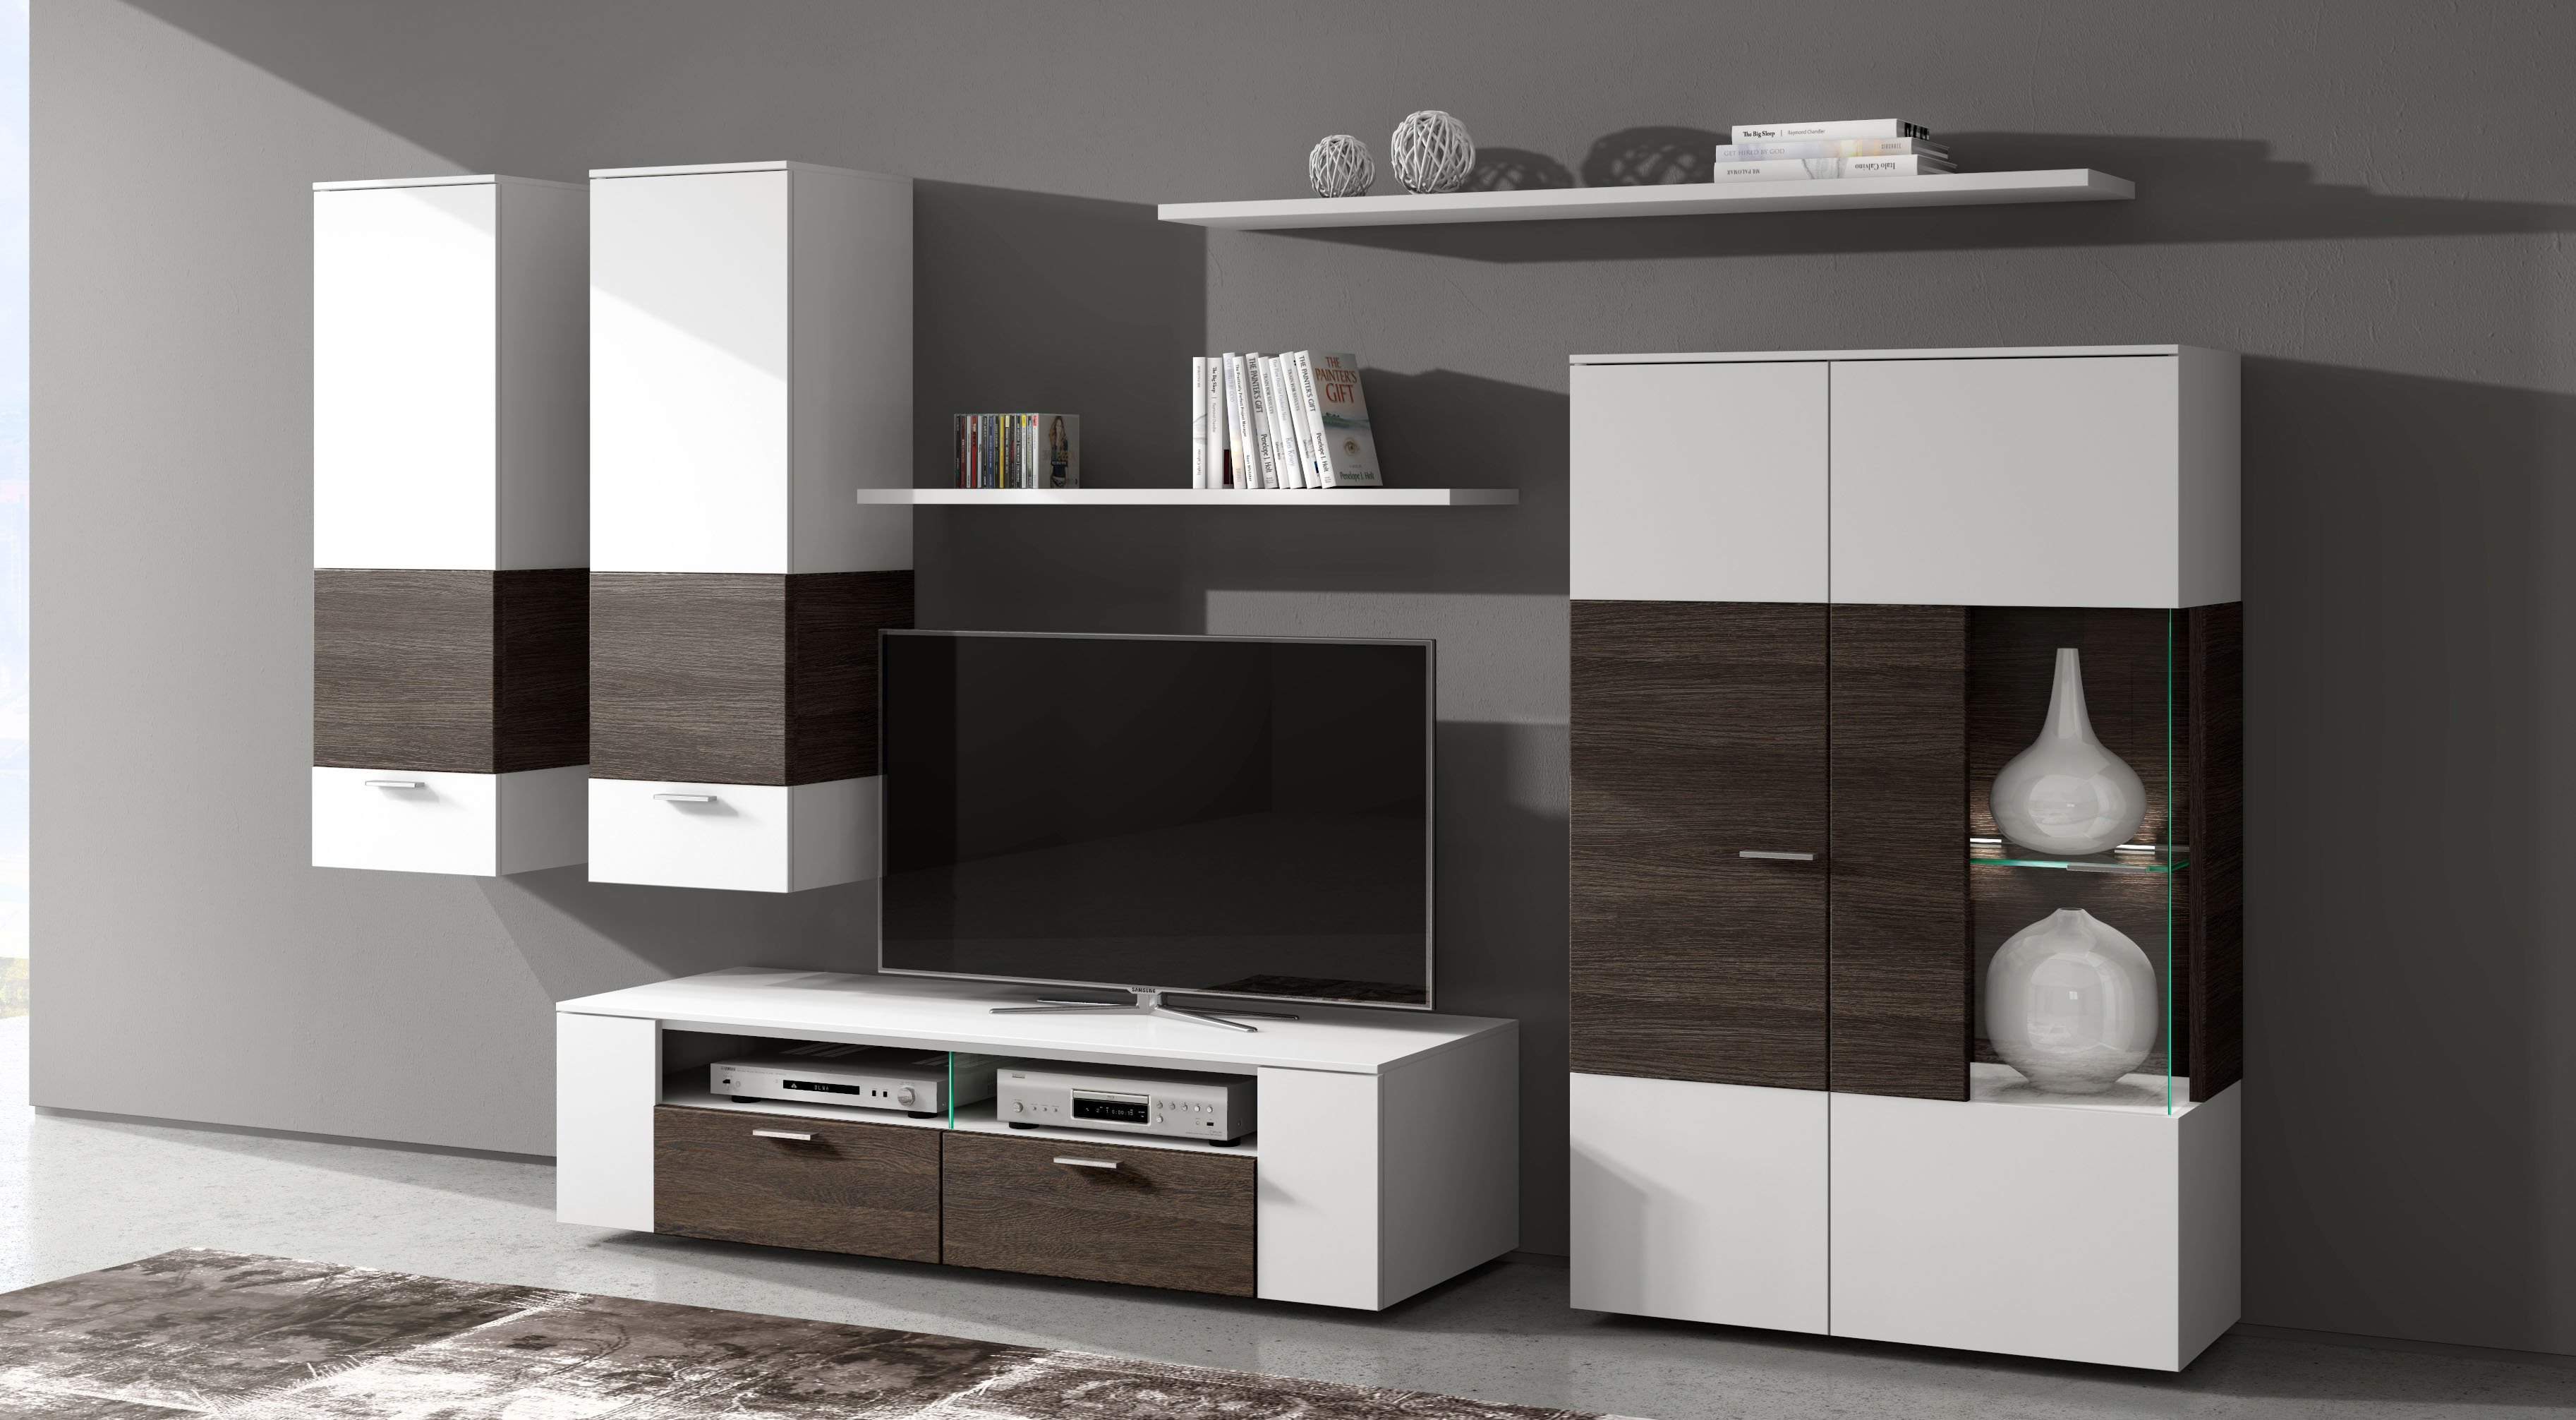 wohnzimmerm bel wei braun. Black Bedroom Furniture Sets. Home Design Ideas